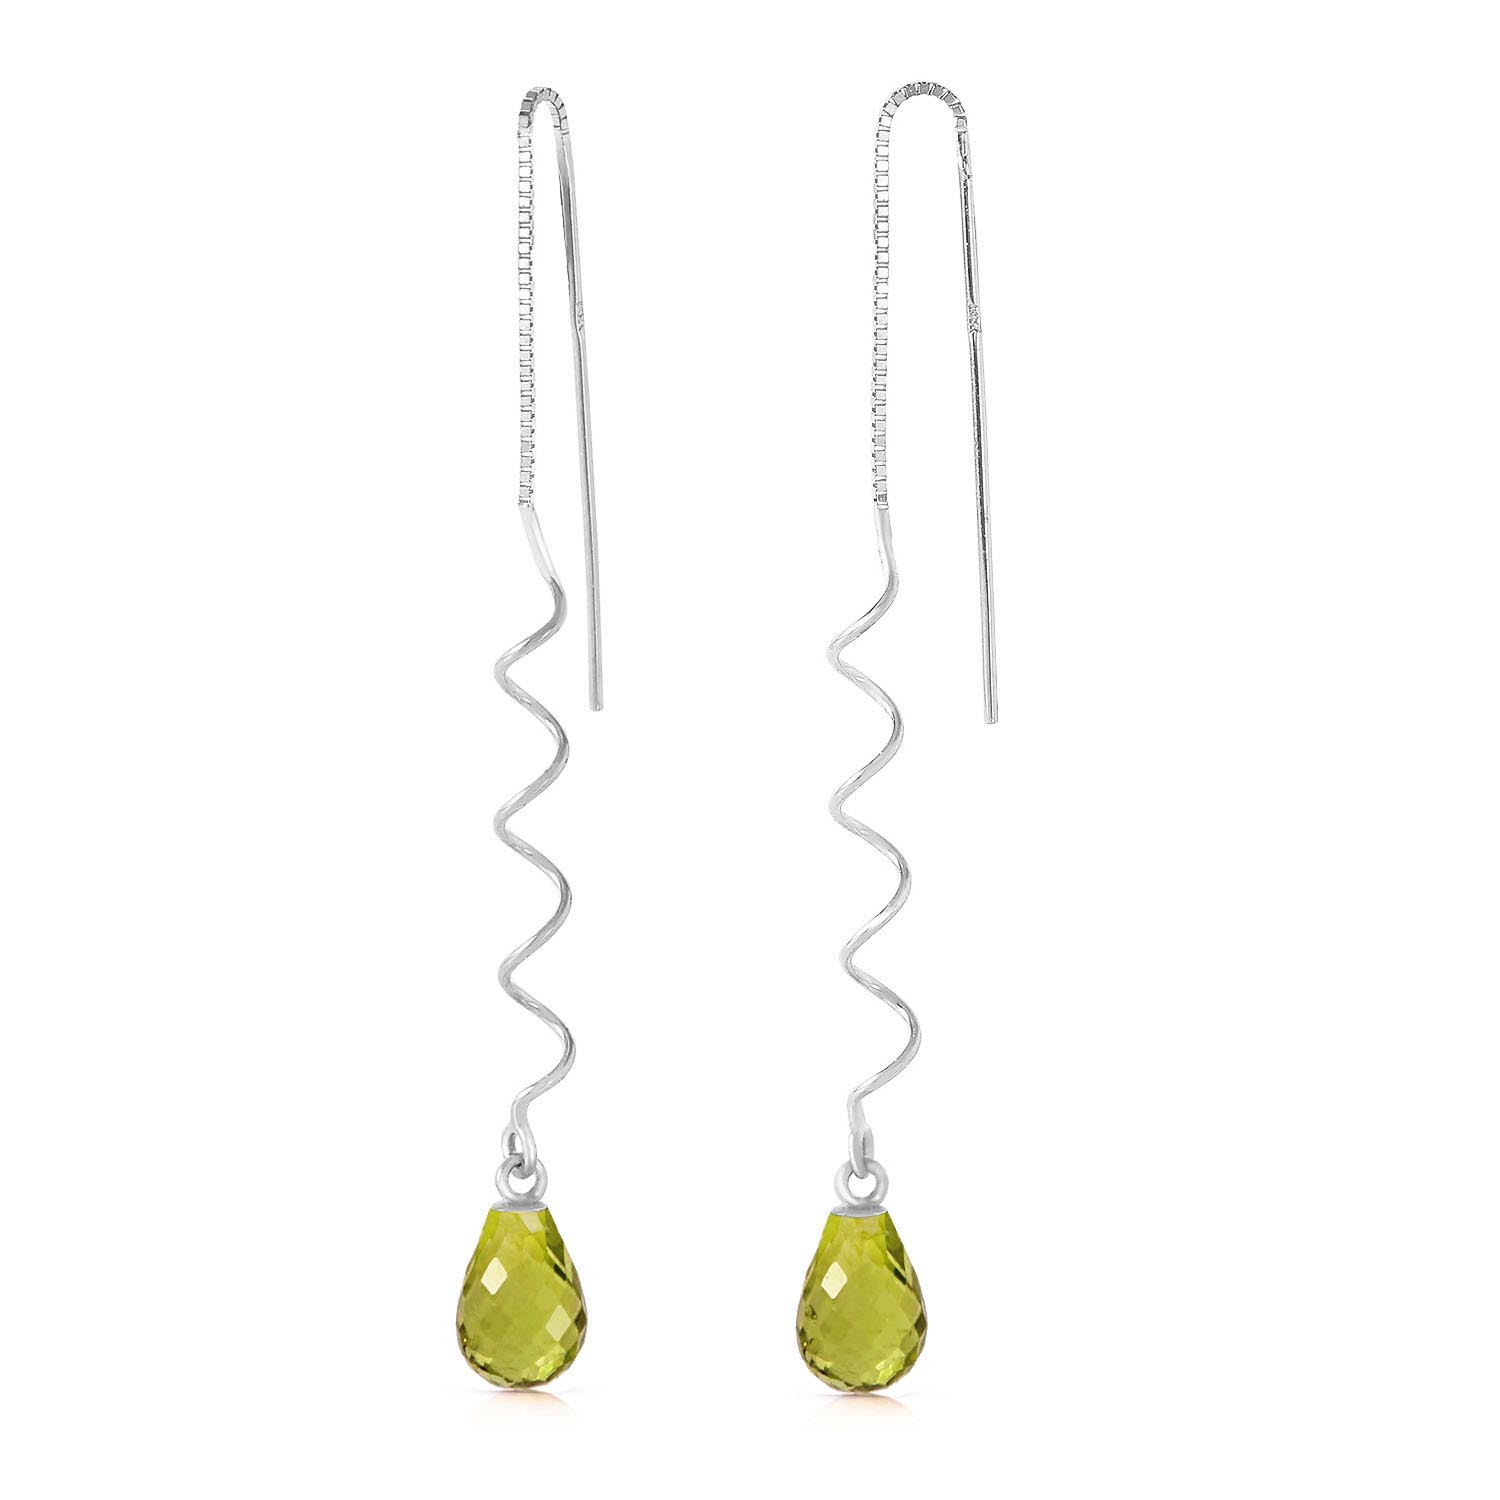 Peridot Spiral Scintilla Earrings 3.3 ctw in 9ct White Gold